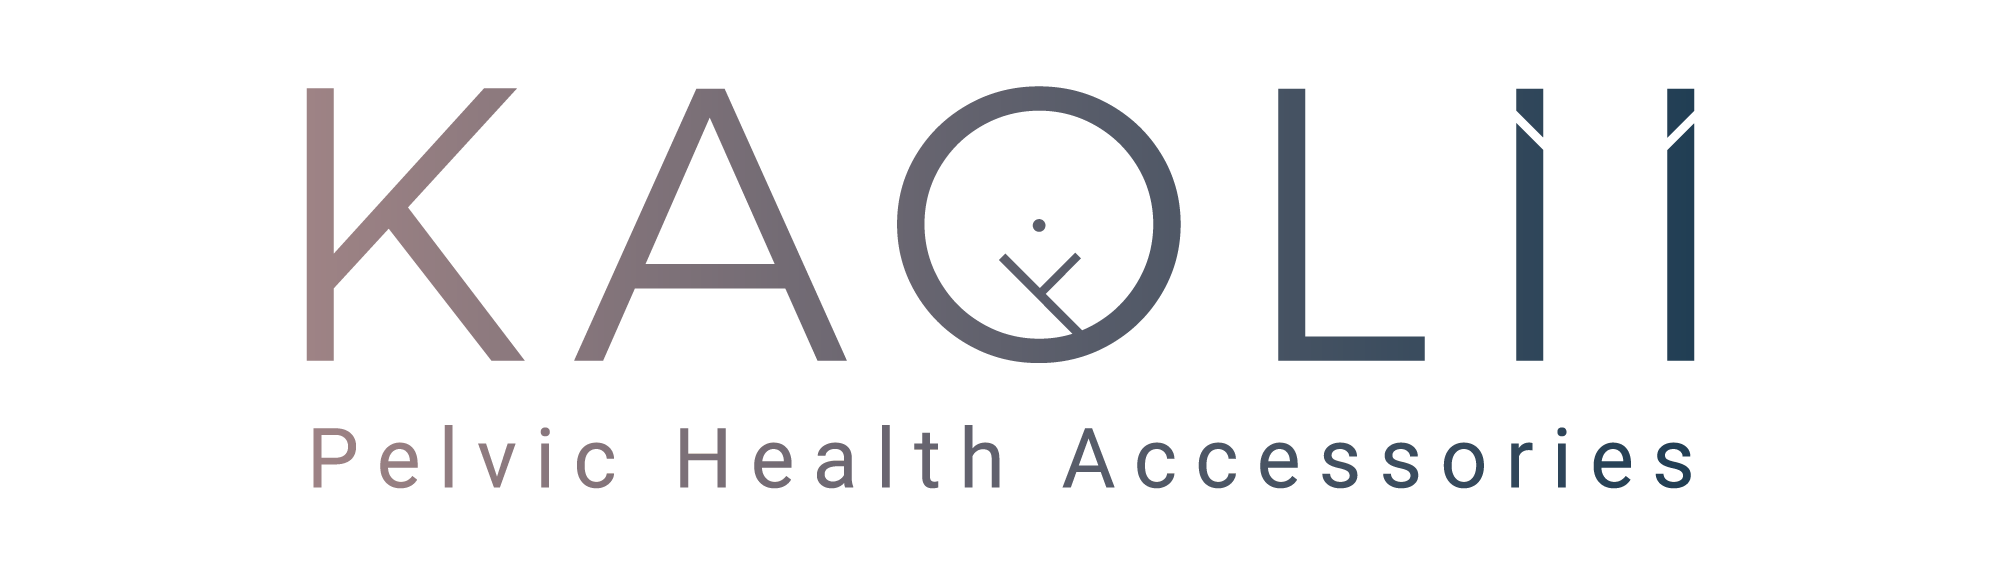 Logo kaolii - Pelvic Health Accessories - Dark